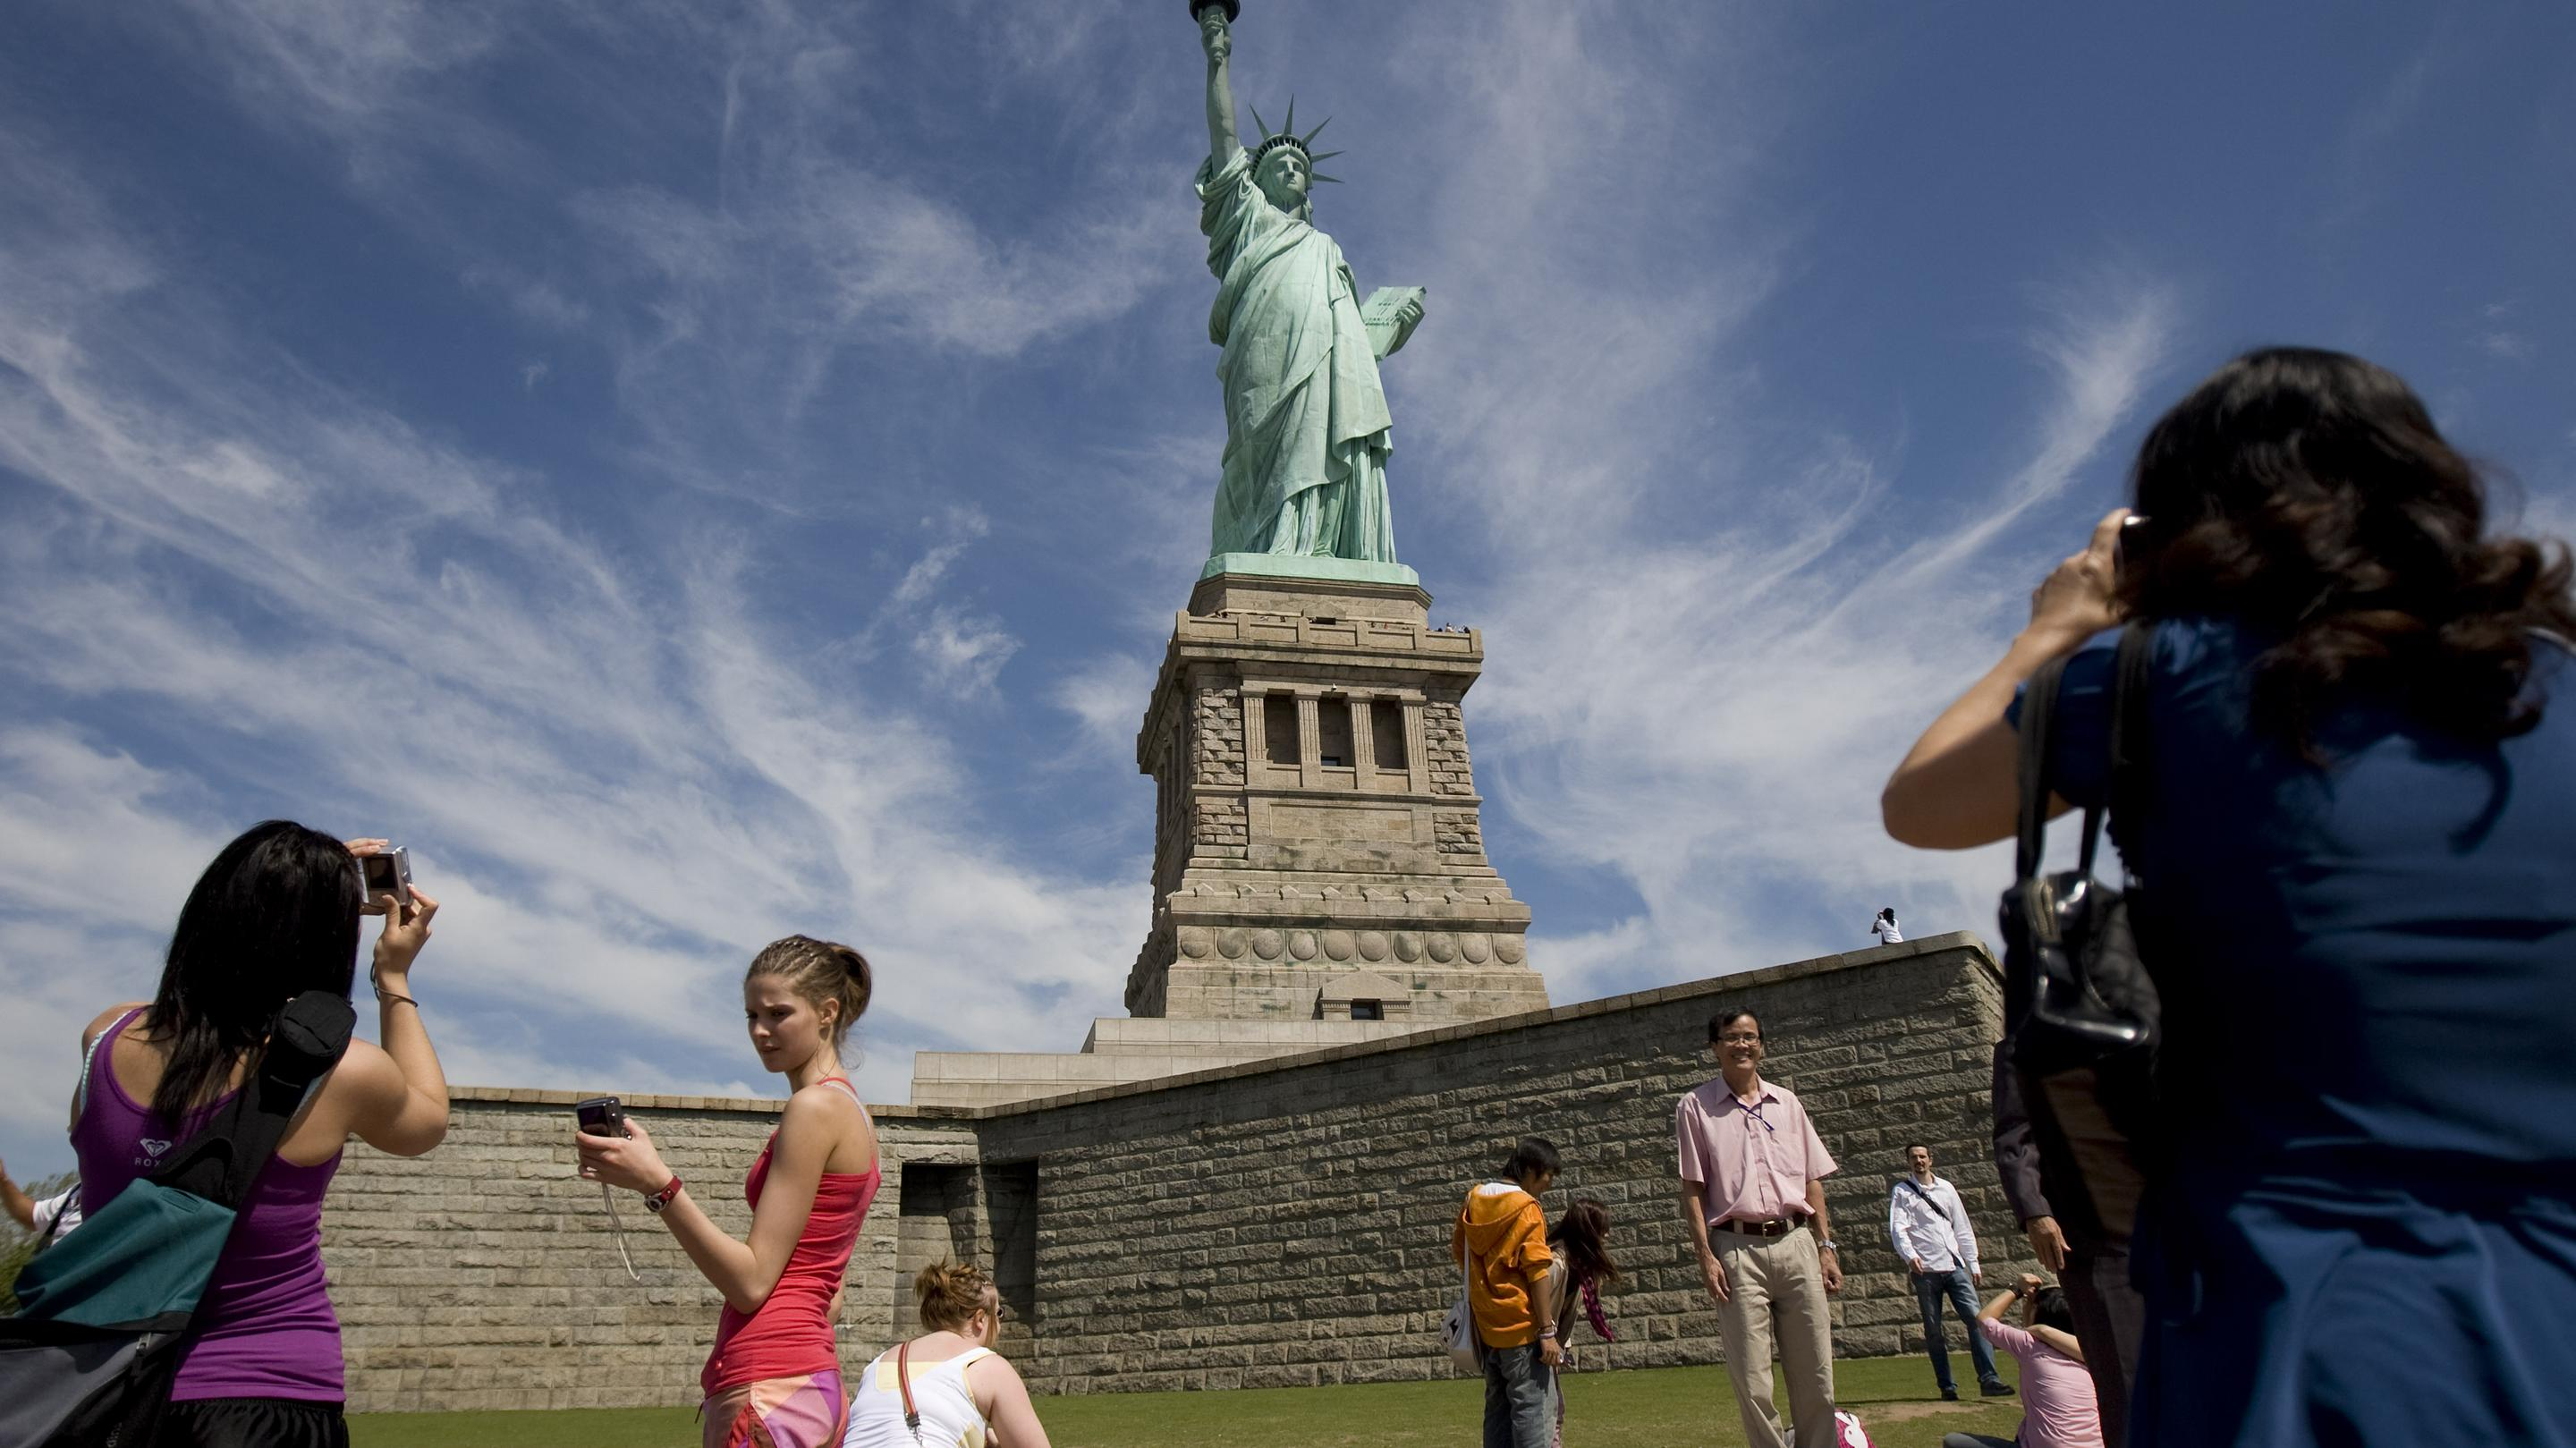 How well do you know the Statue of Liberty?